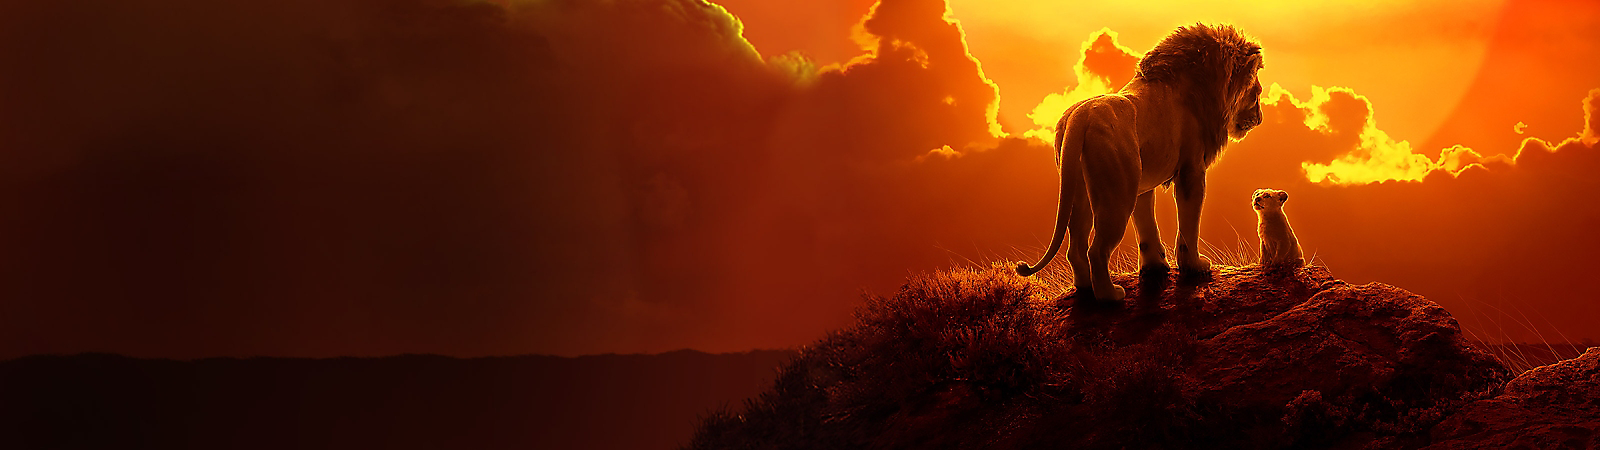 Background image of The Lion King - 2019 Film